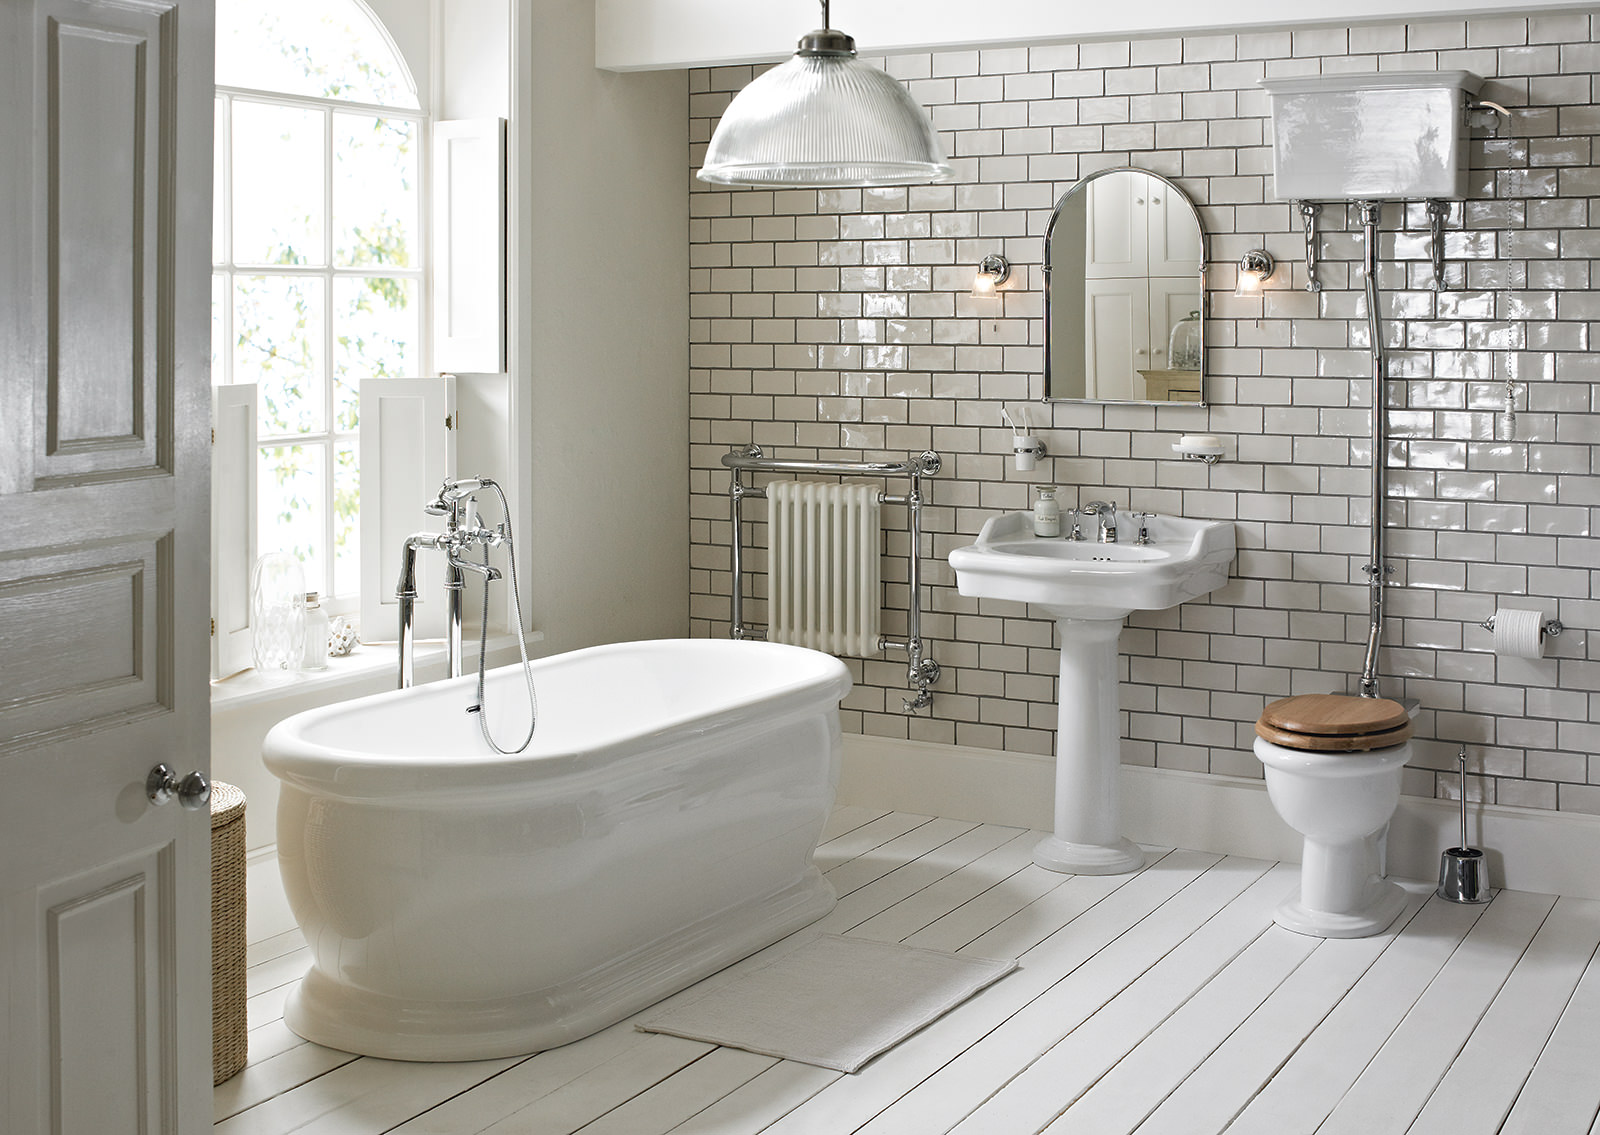 Heritage victoria high level wc and cistern with flush pack for Bathroom ideas traditional